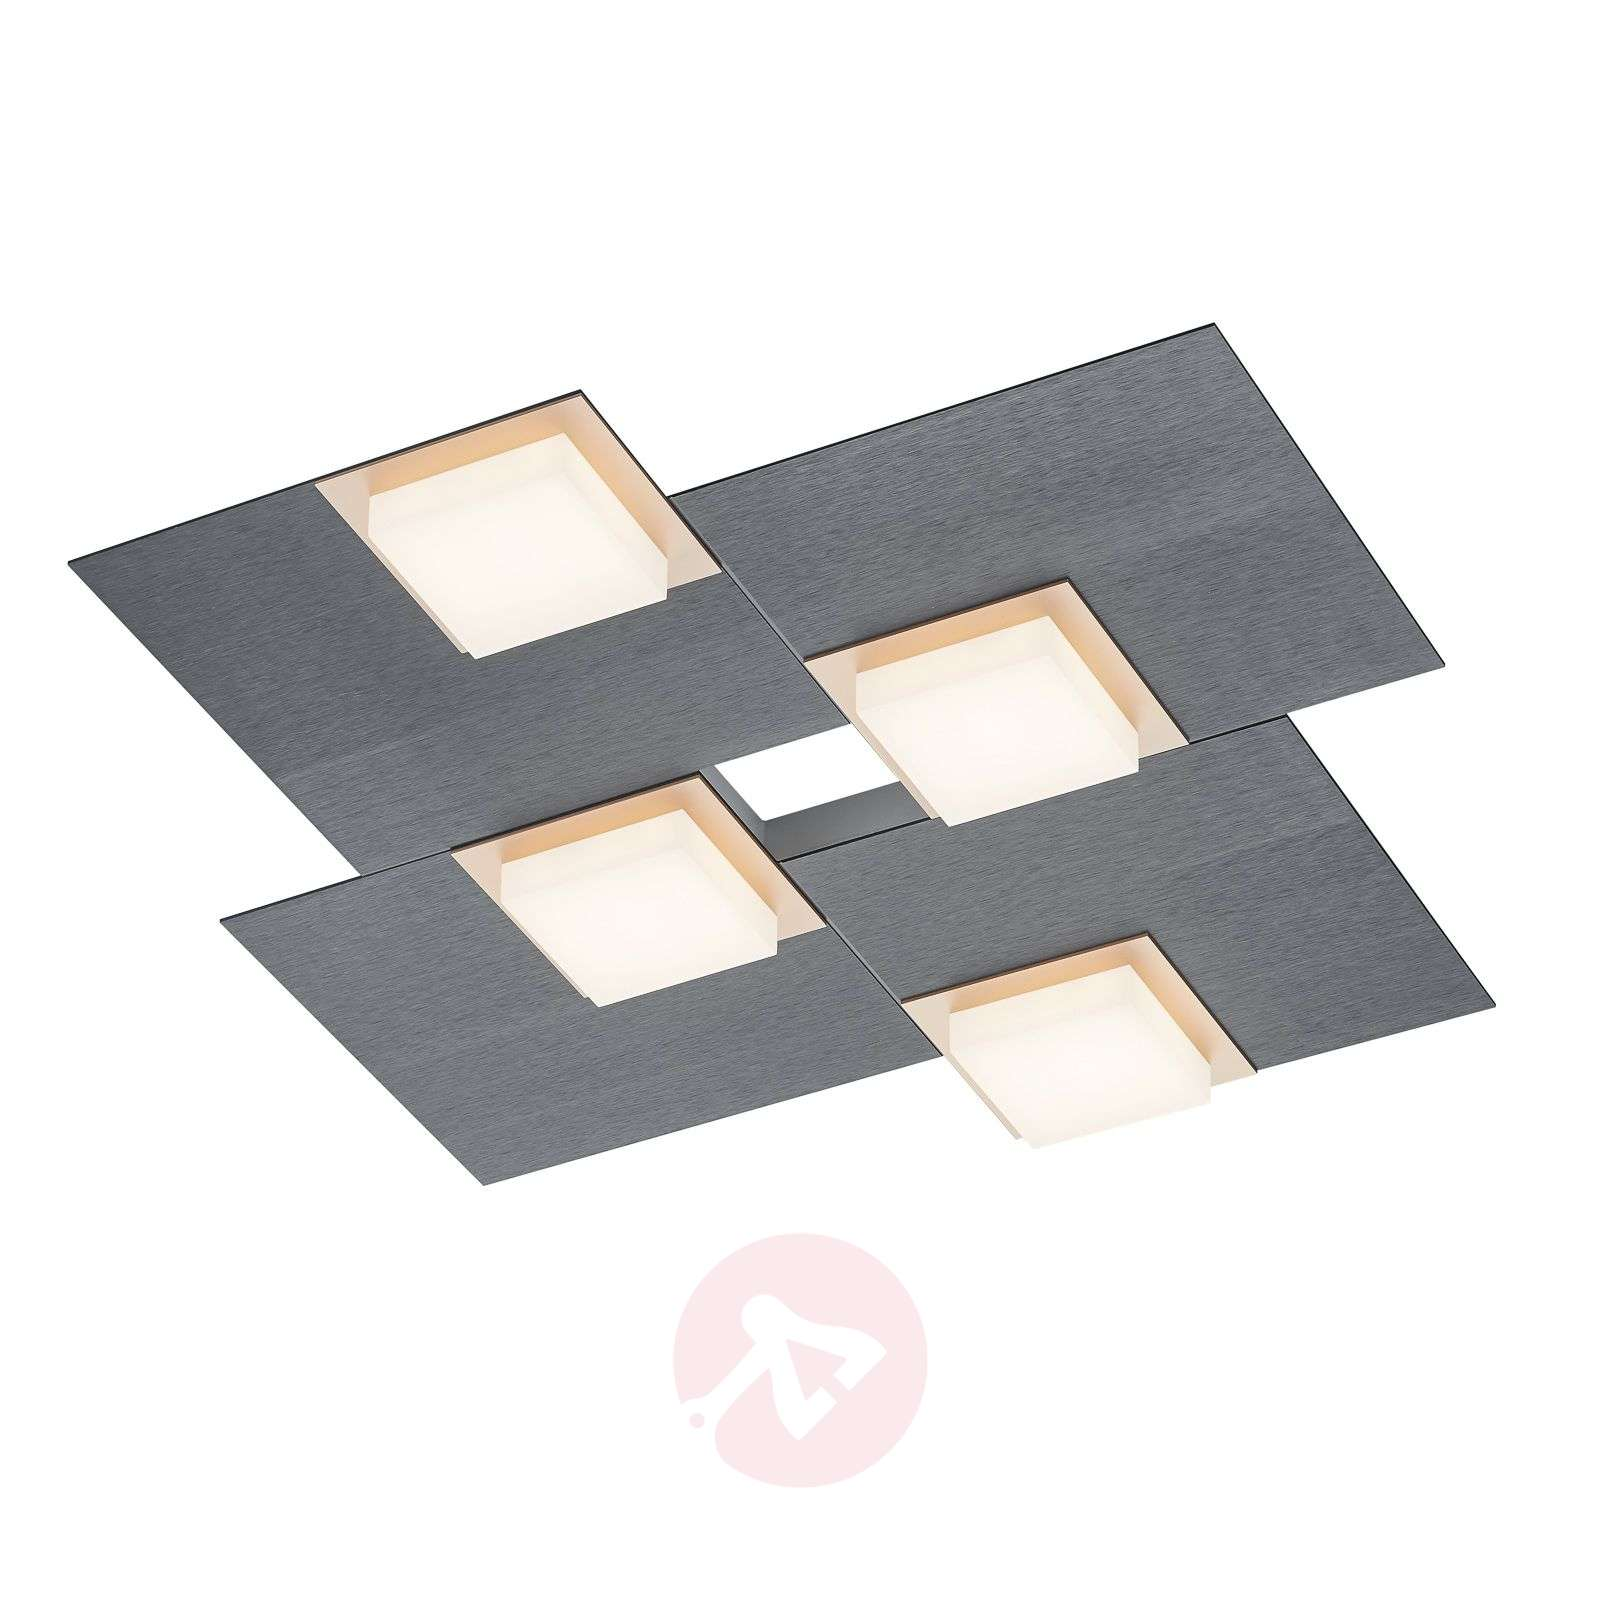 BANKAMP Quadro lampa sufitowa LED 32 W antracyt-1572027-01